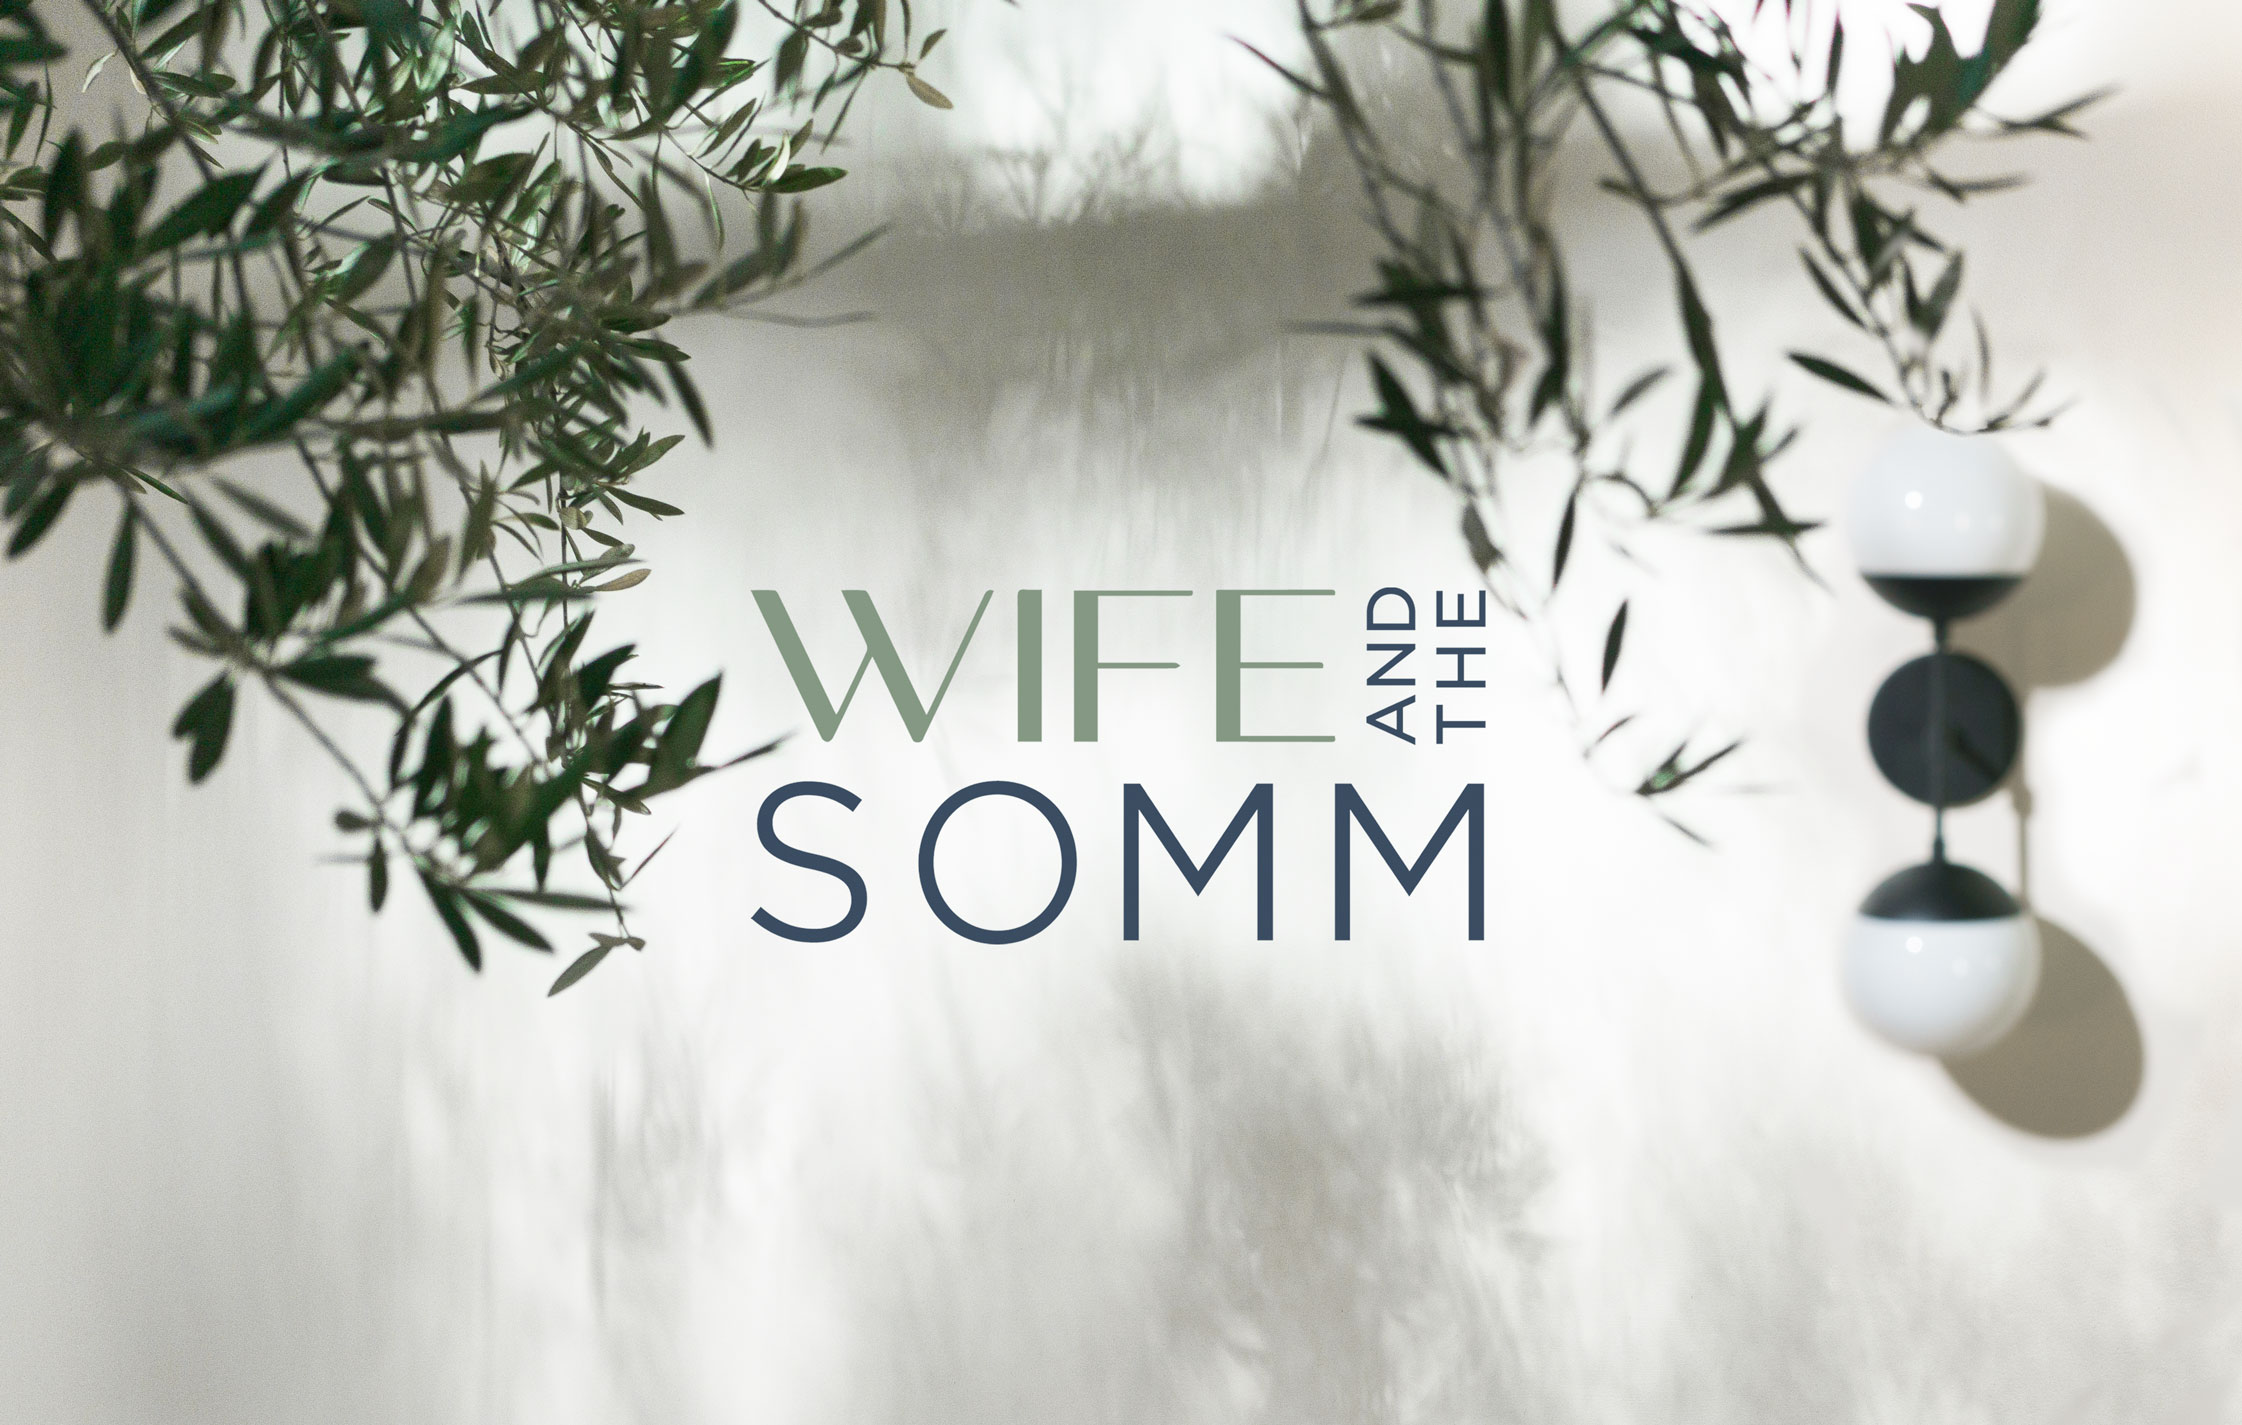 Wife and the Somm logo on beautiful photograph of outdoor dining space with tree leaves in focus.